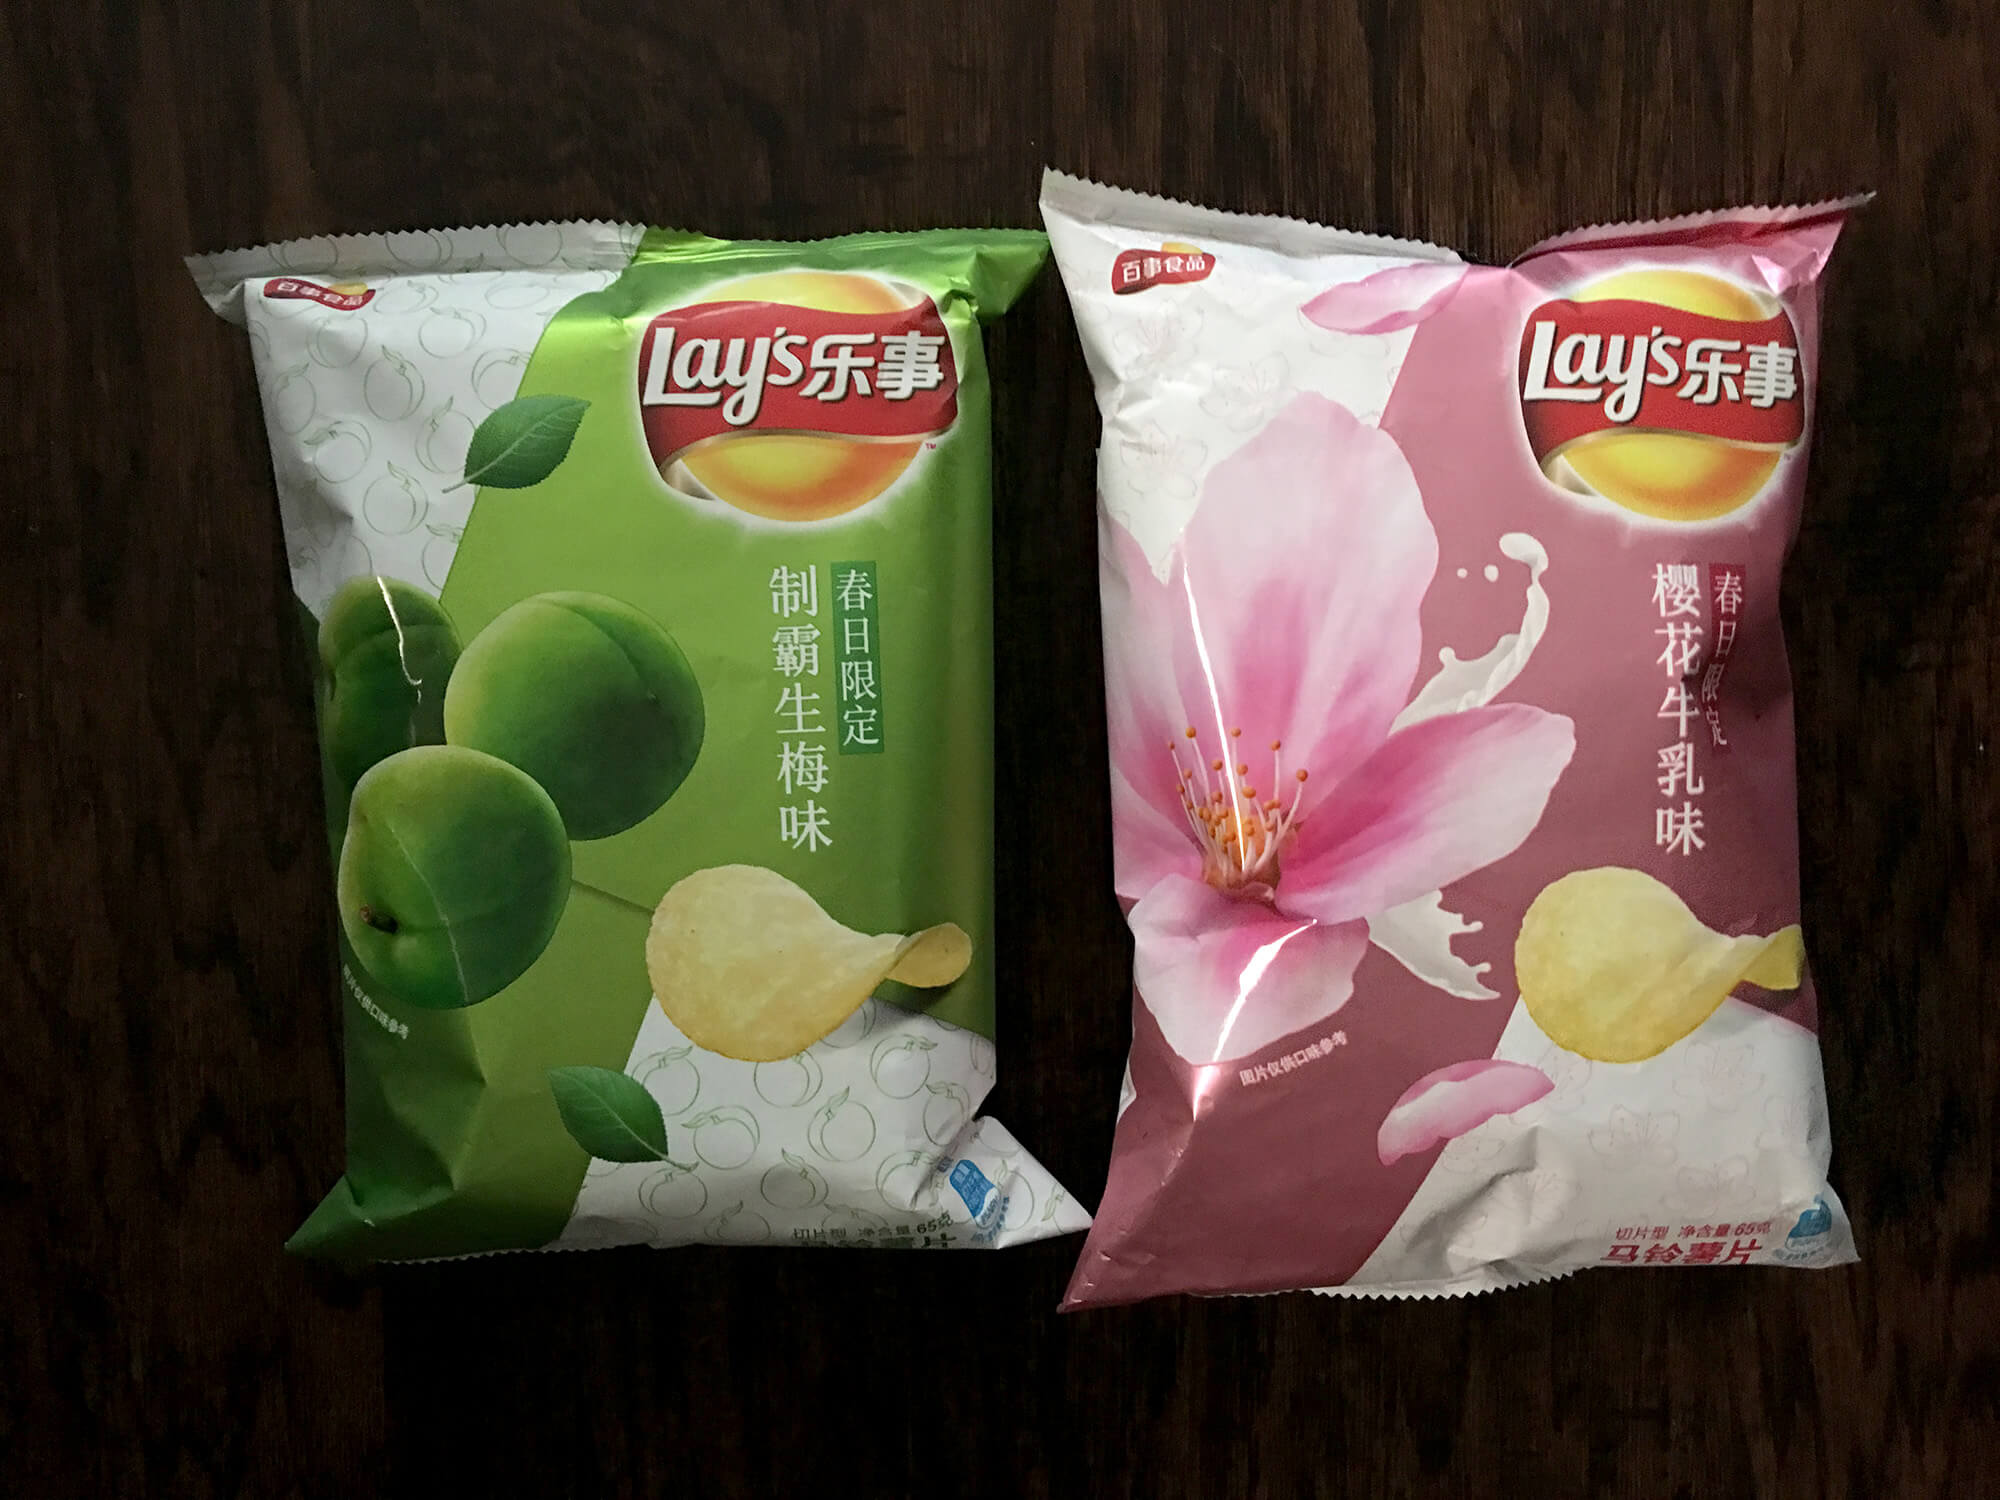 Plum and Sakura (Cherry Blossom) Milk Flavored Lays Potato Chips